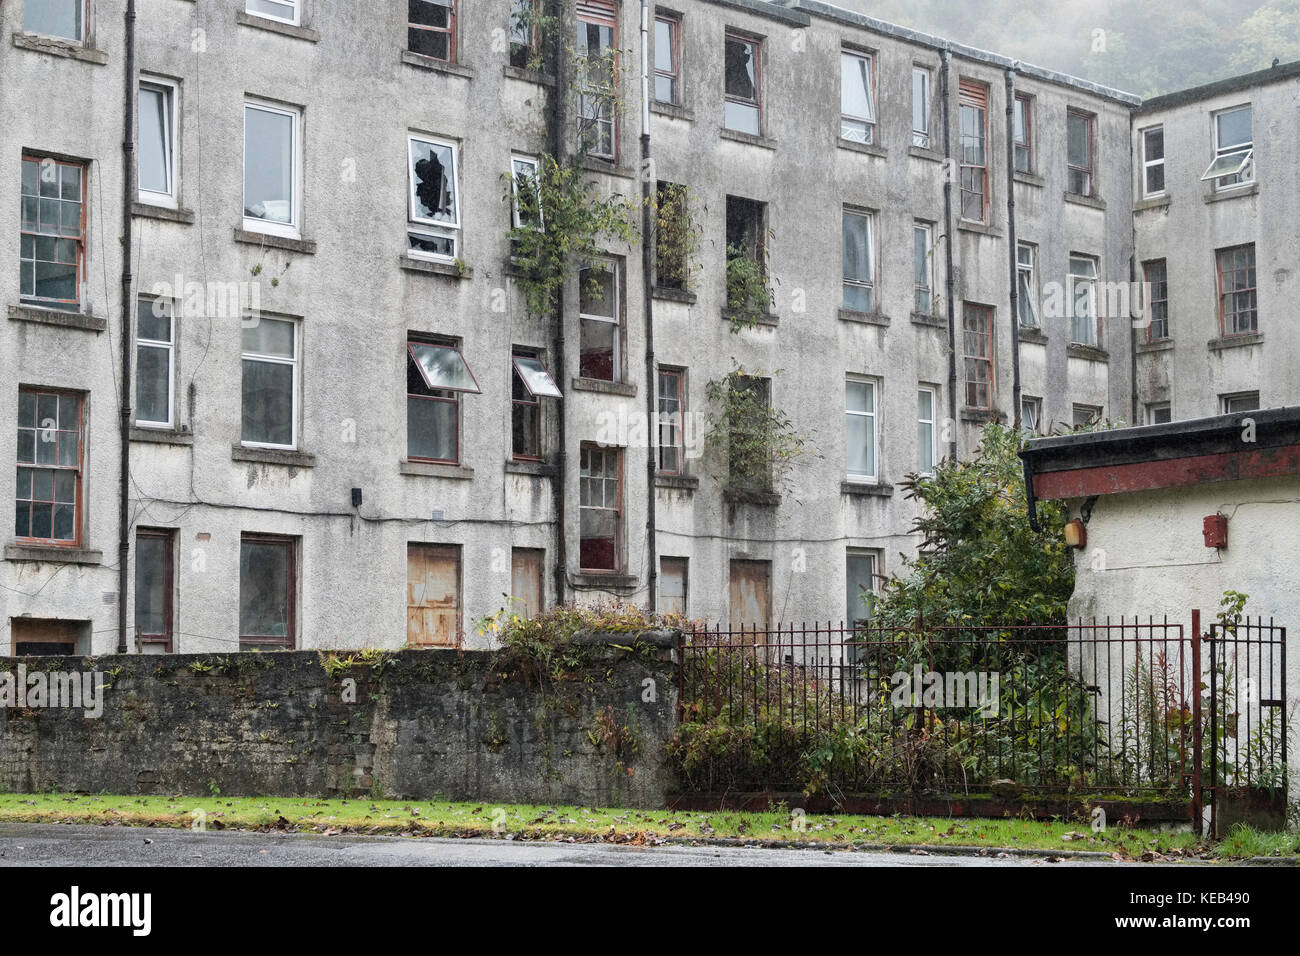 Council Housing Derelict For Rent and Sale UK Port Glasgow Stock Photo